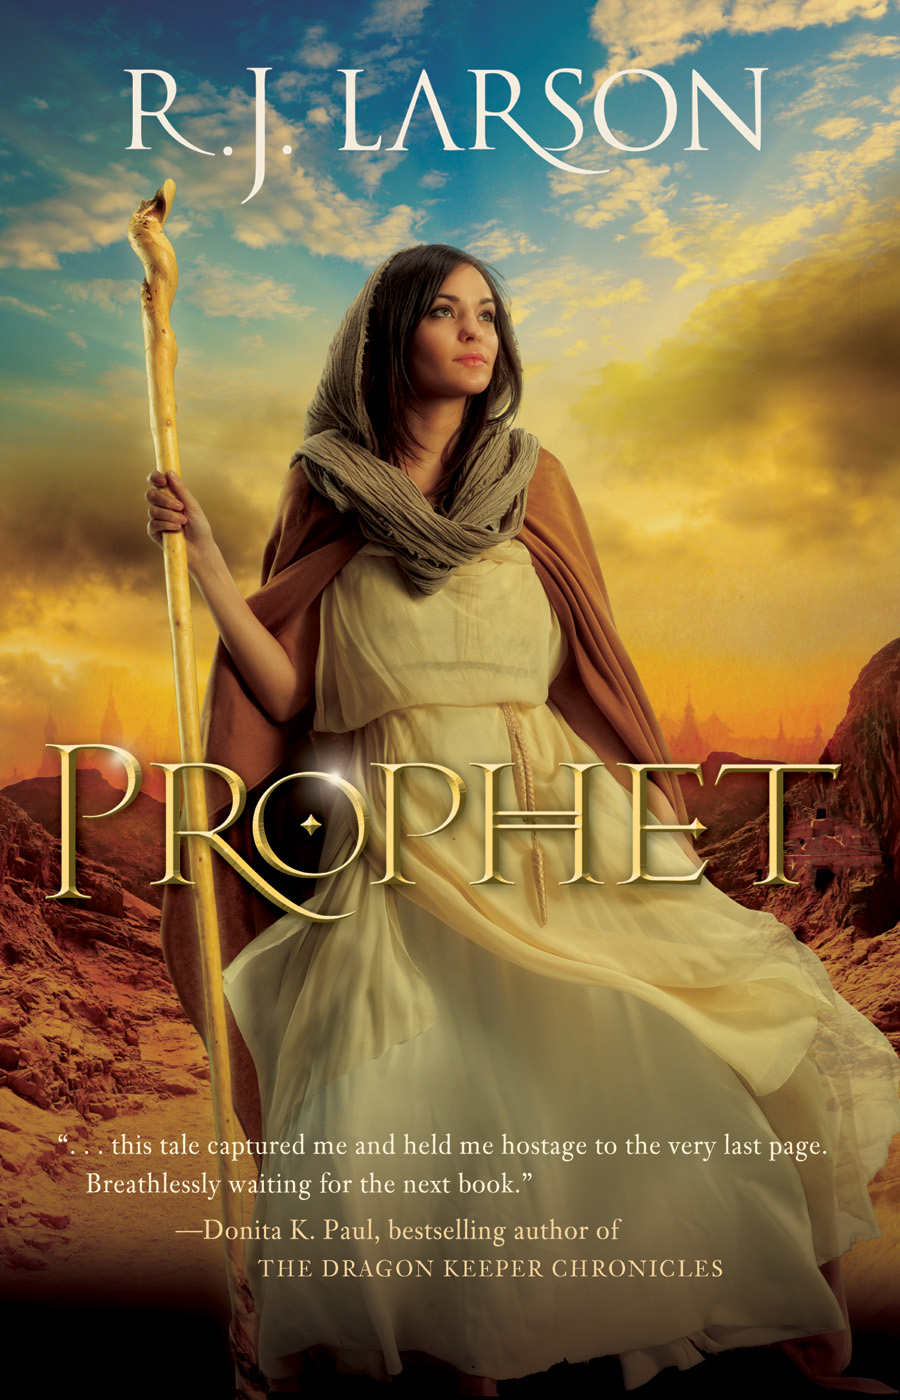 Book review of Prophet by R. J. Larson. Will diplomacy and military might win over the Istgardians, or will they turn back to the Infinite? Will Ela's faith hold out, or will she crumble under all of the pressure of serving as the Infinite's youngest prophet?